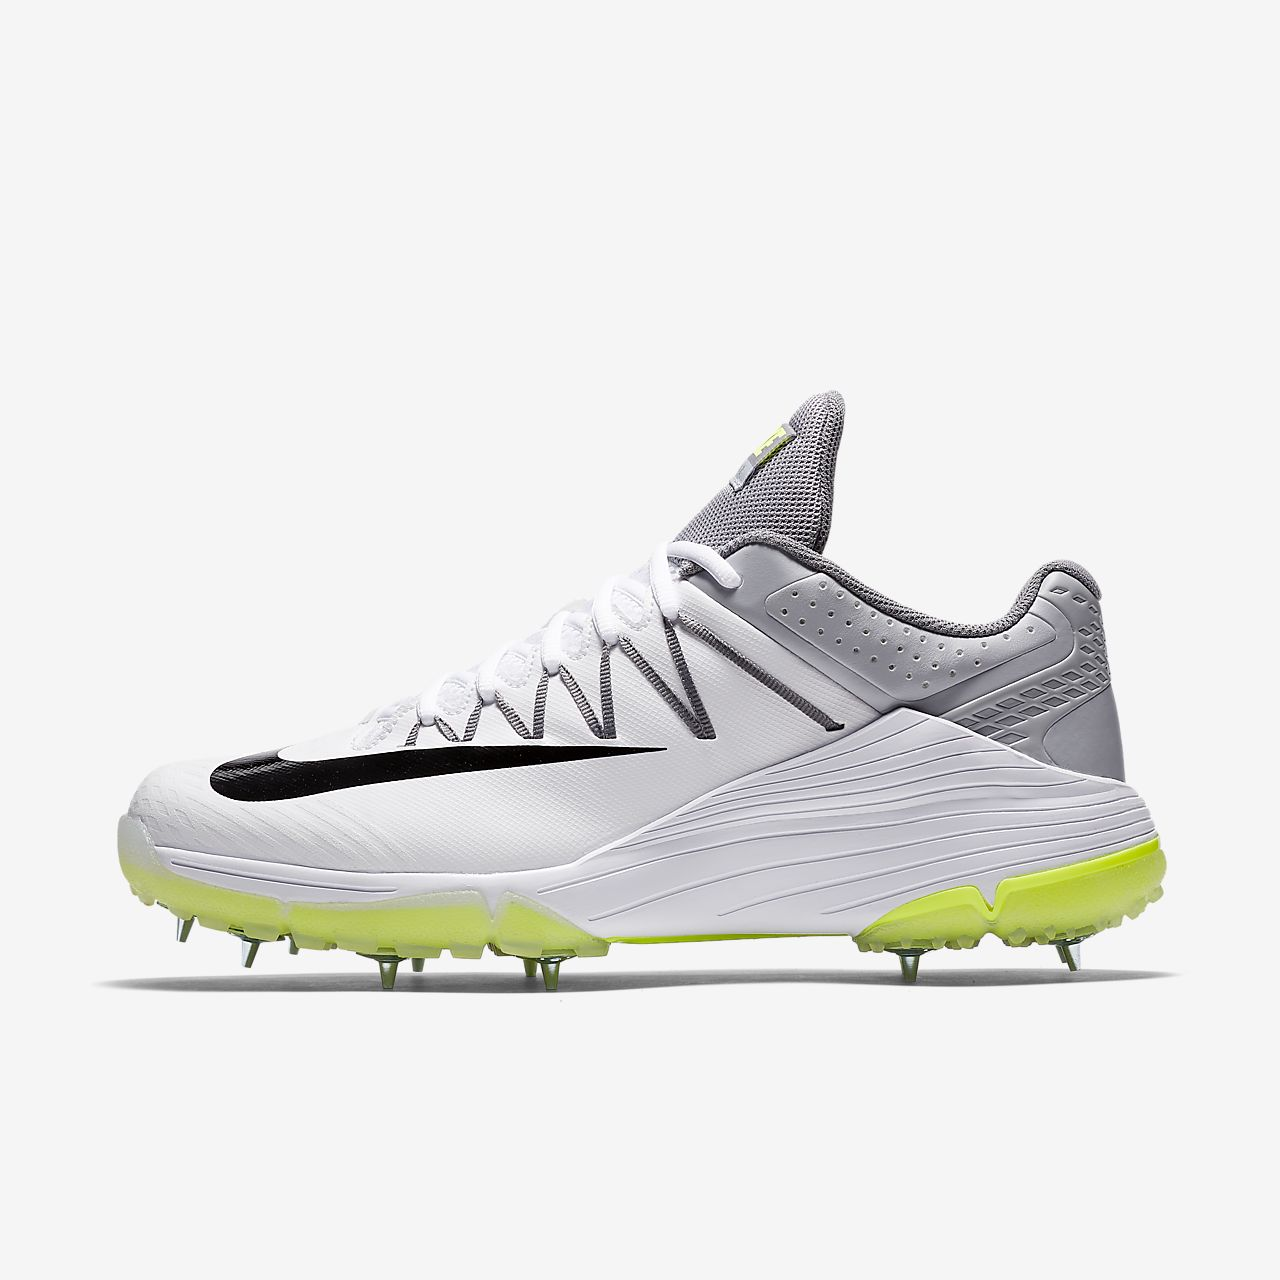 competitive price 98341 4ad47 Unisex Cricket Shoe. Nike Domain 2